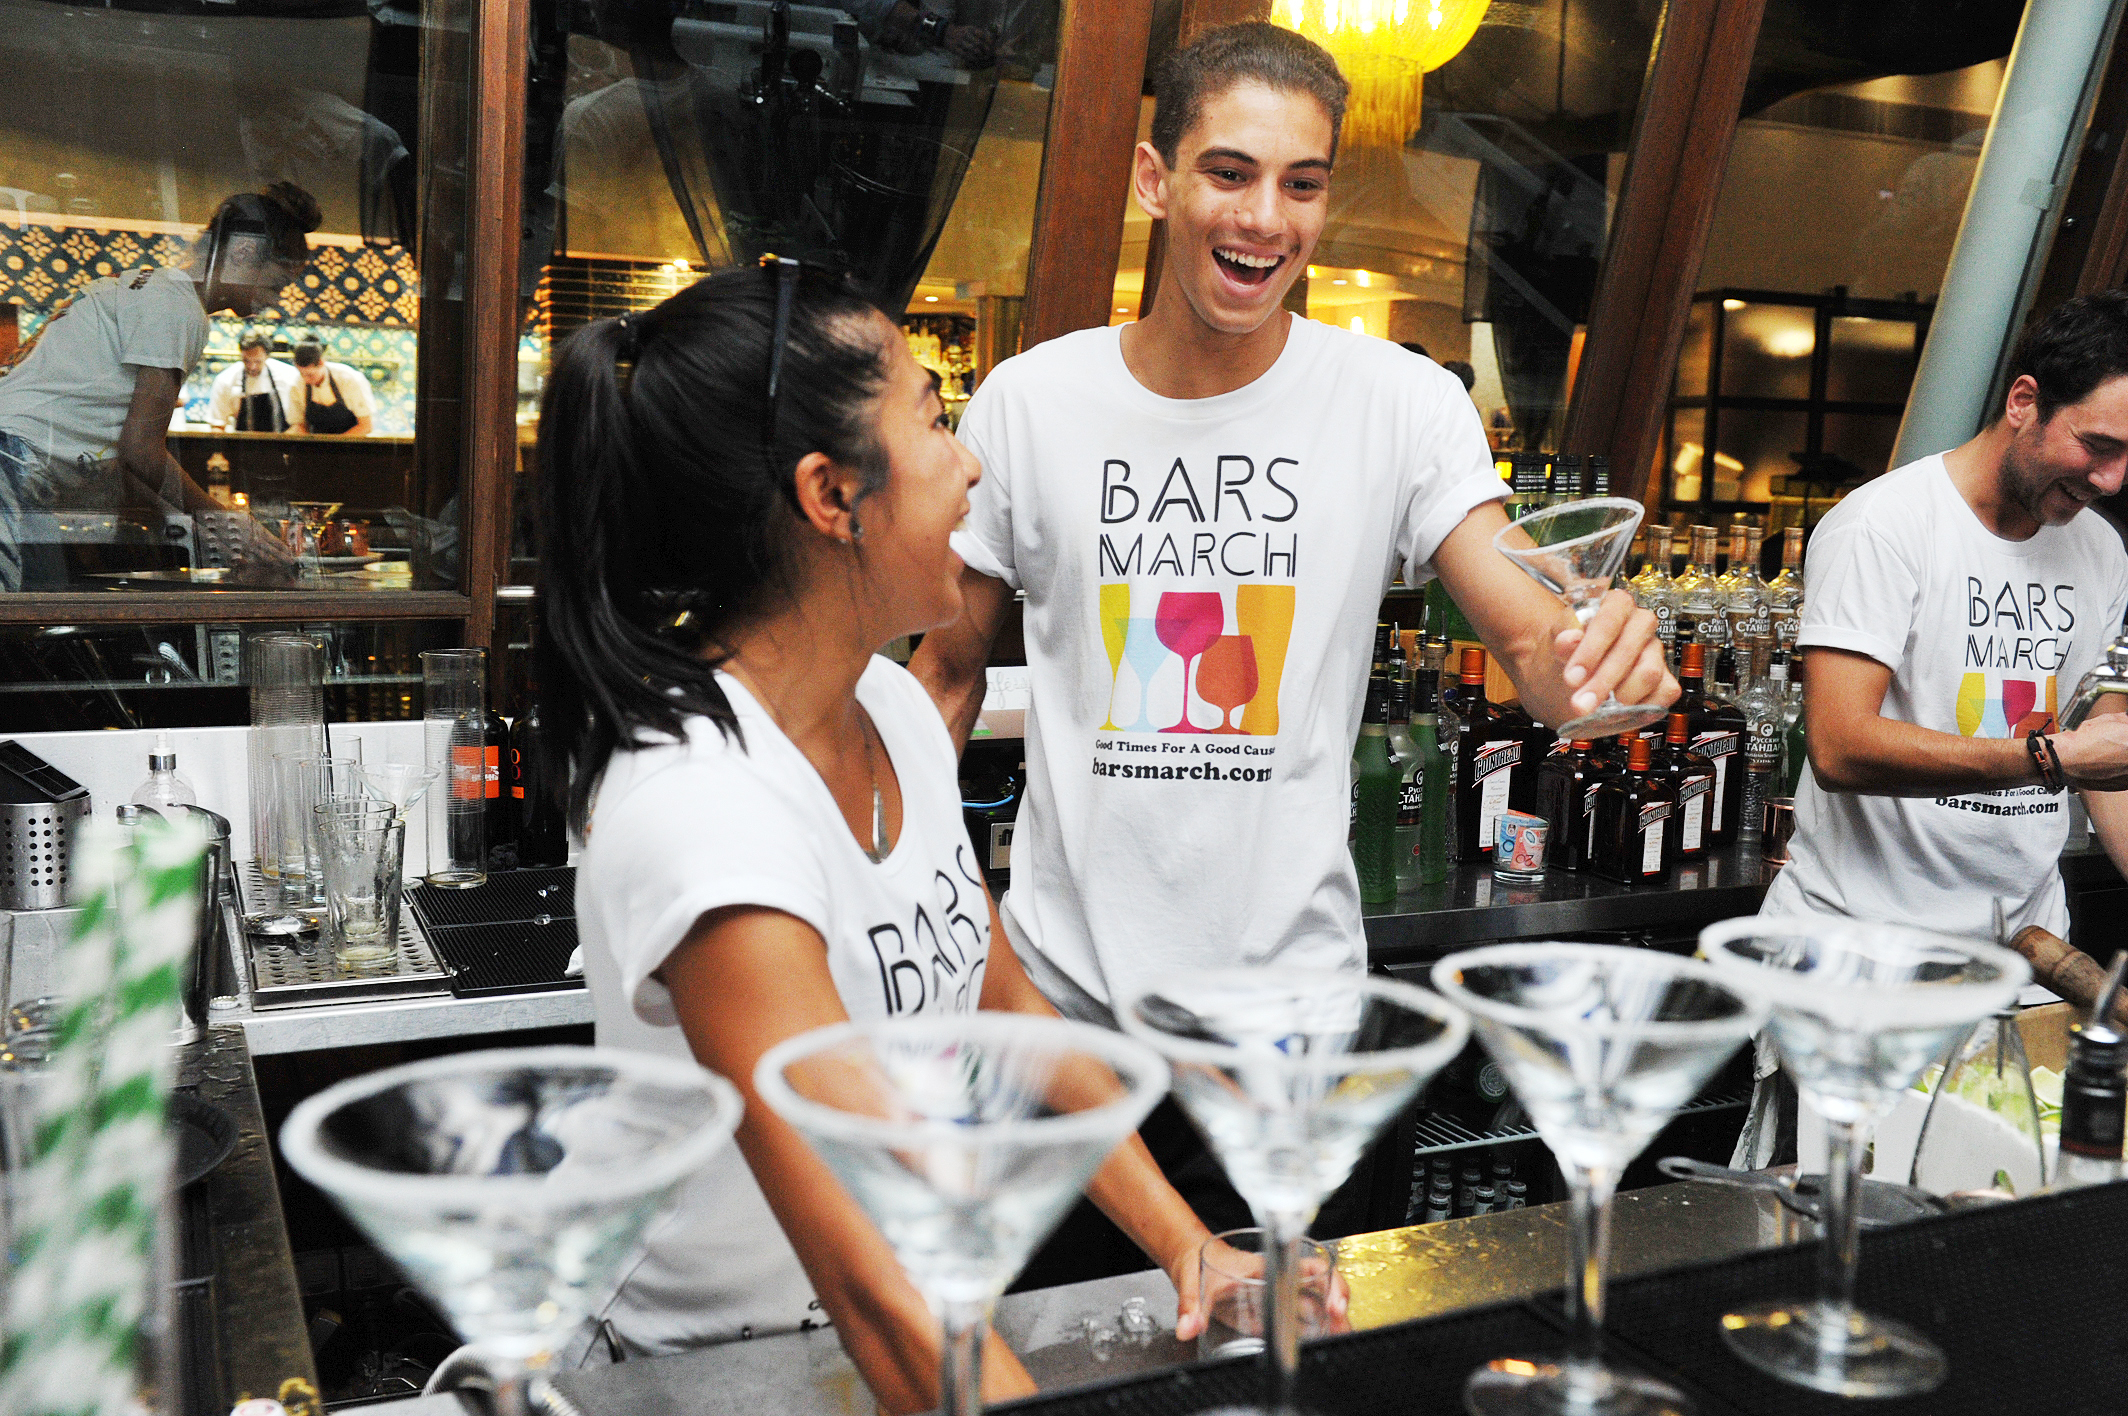 Two bartenders preparing a round of martinis at a bar